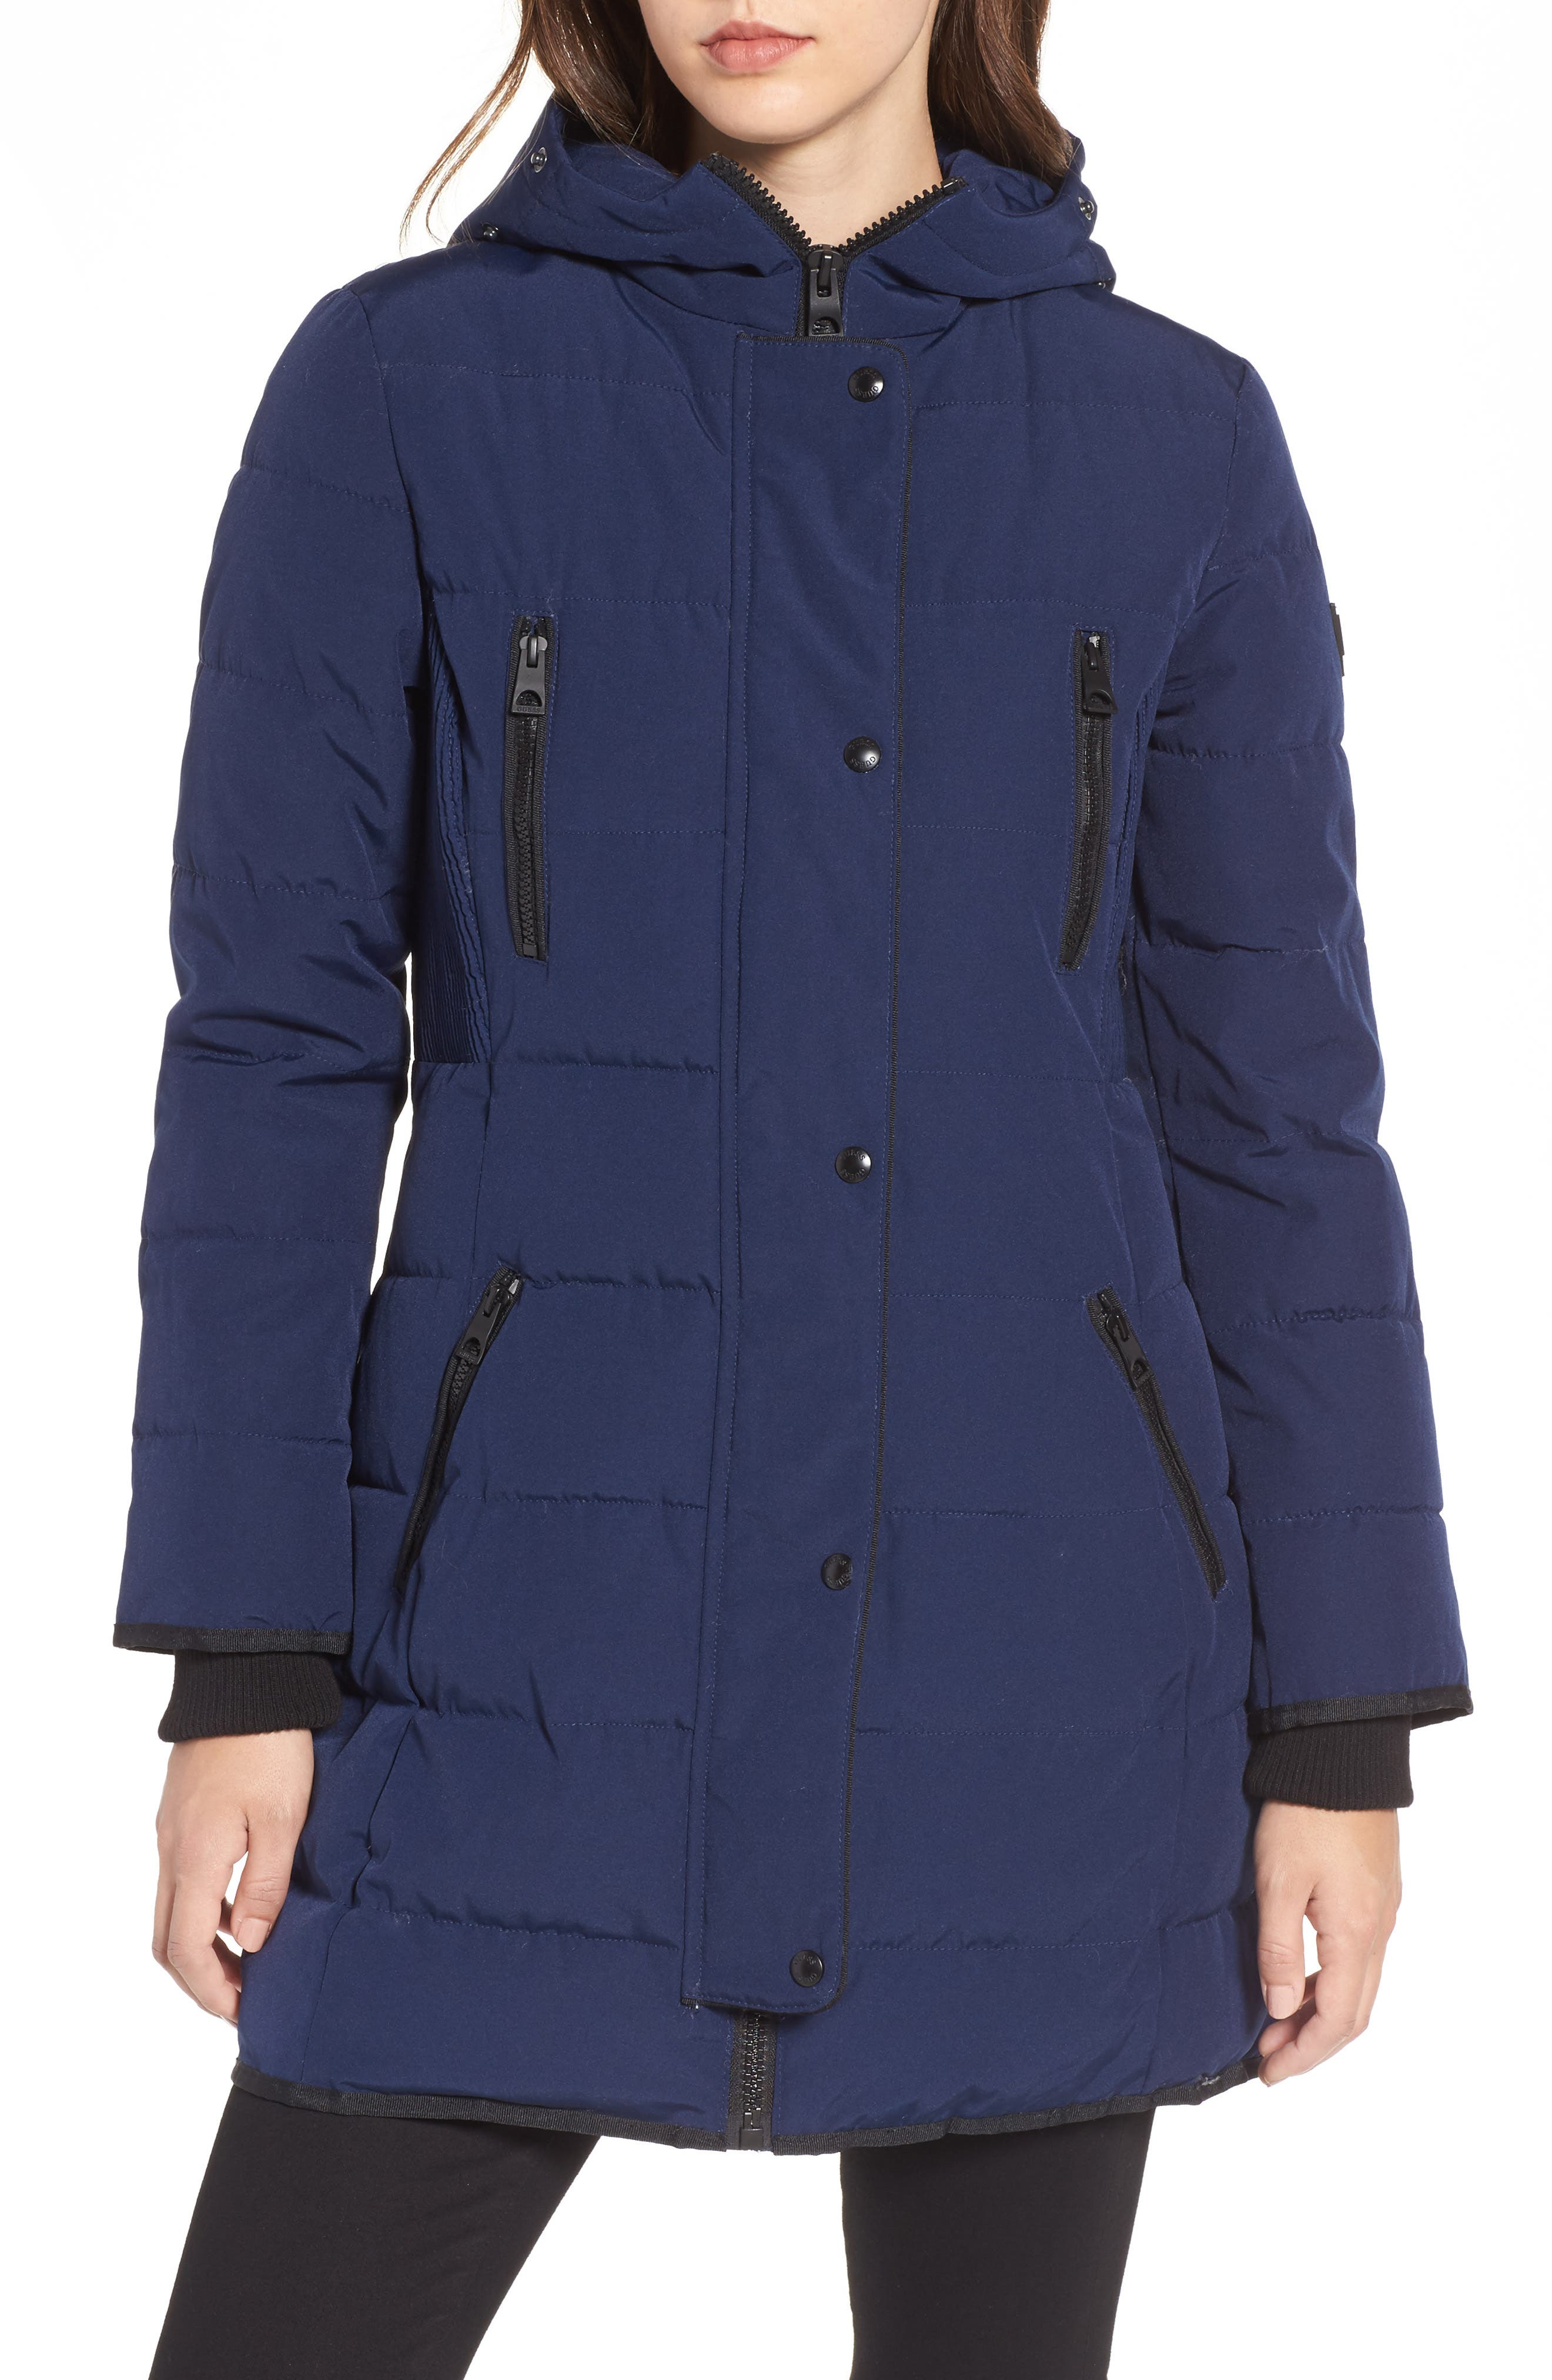 Hooded Jacket with Faux Fur Trim,                             Alternate thumbnail 4, color,                             Navy